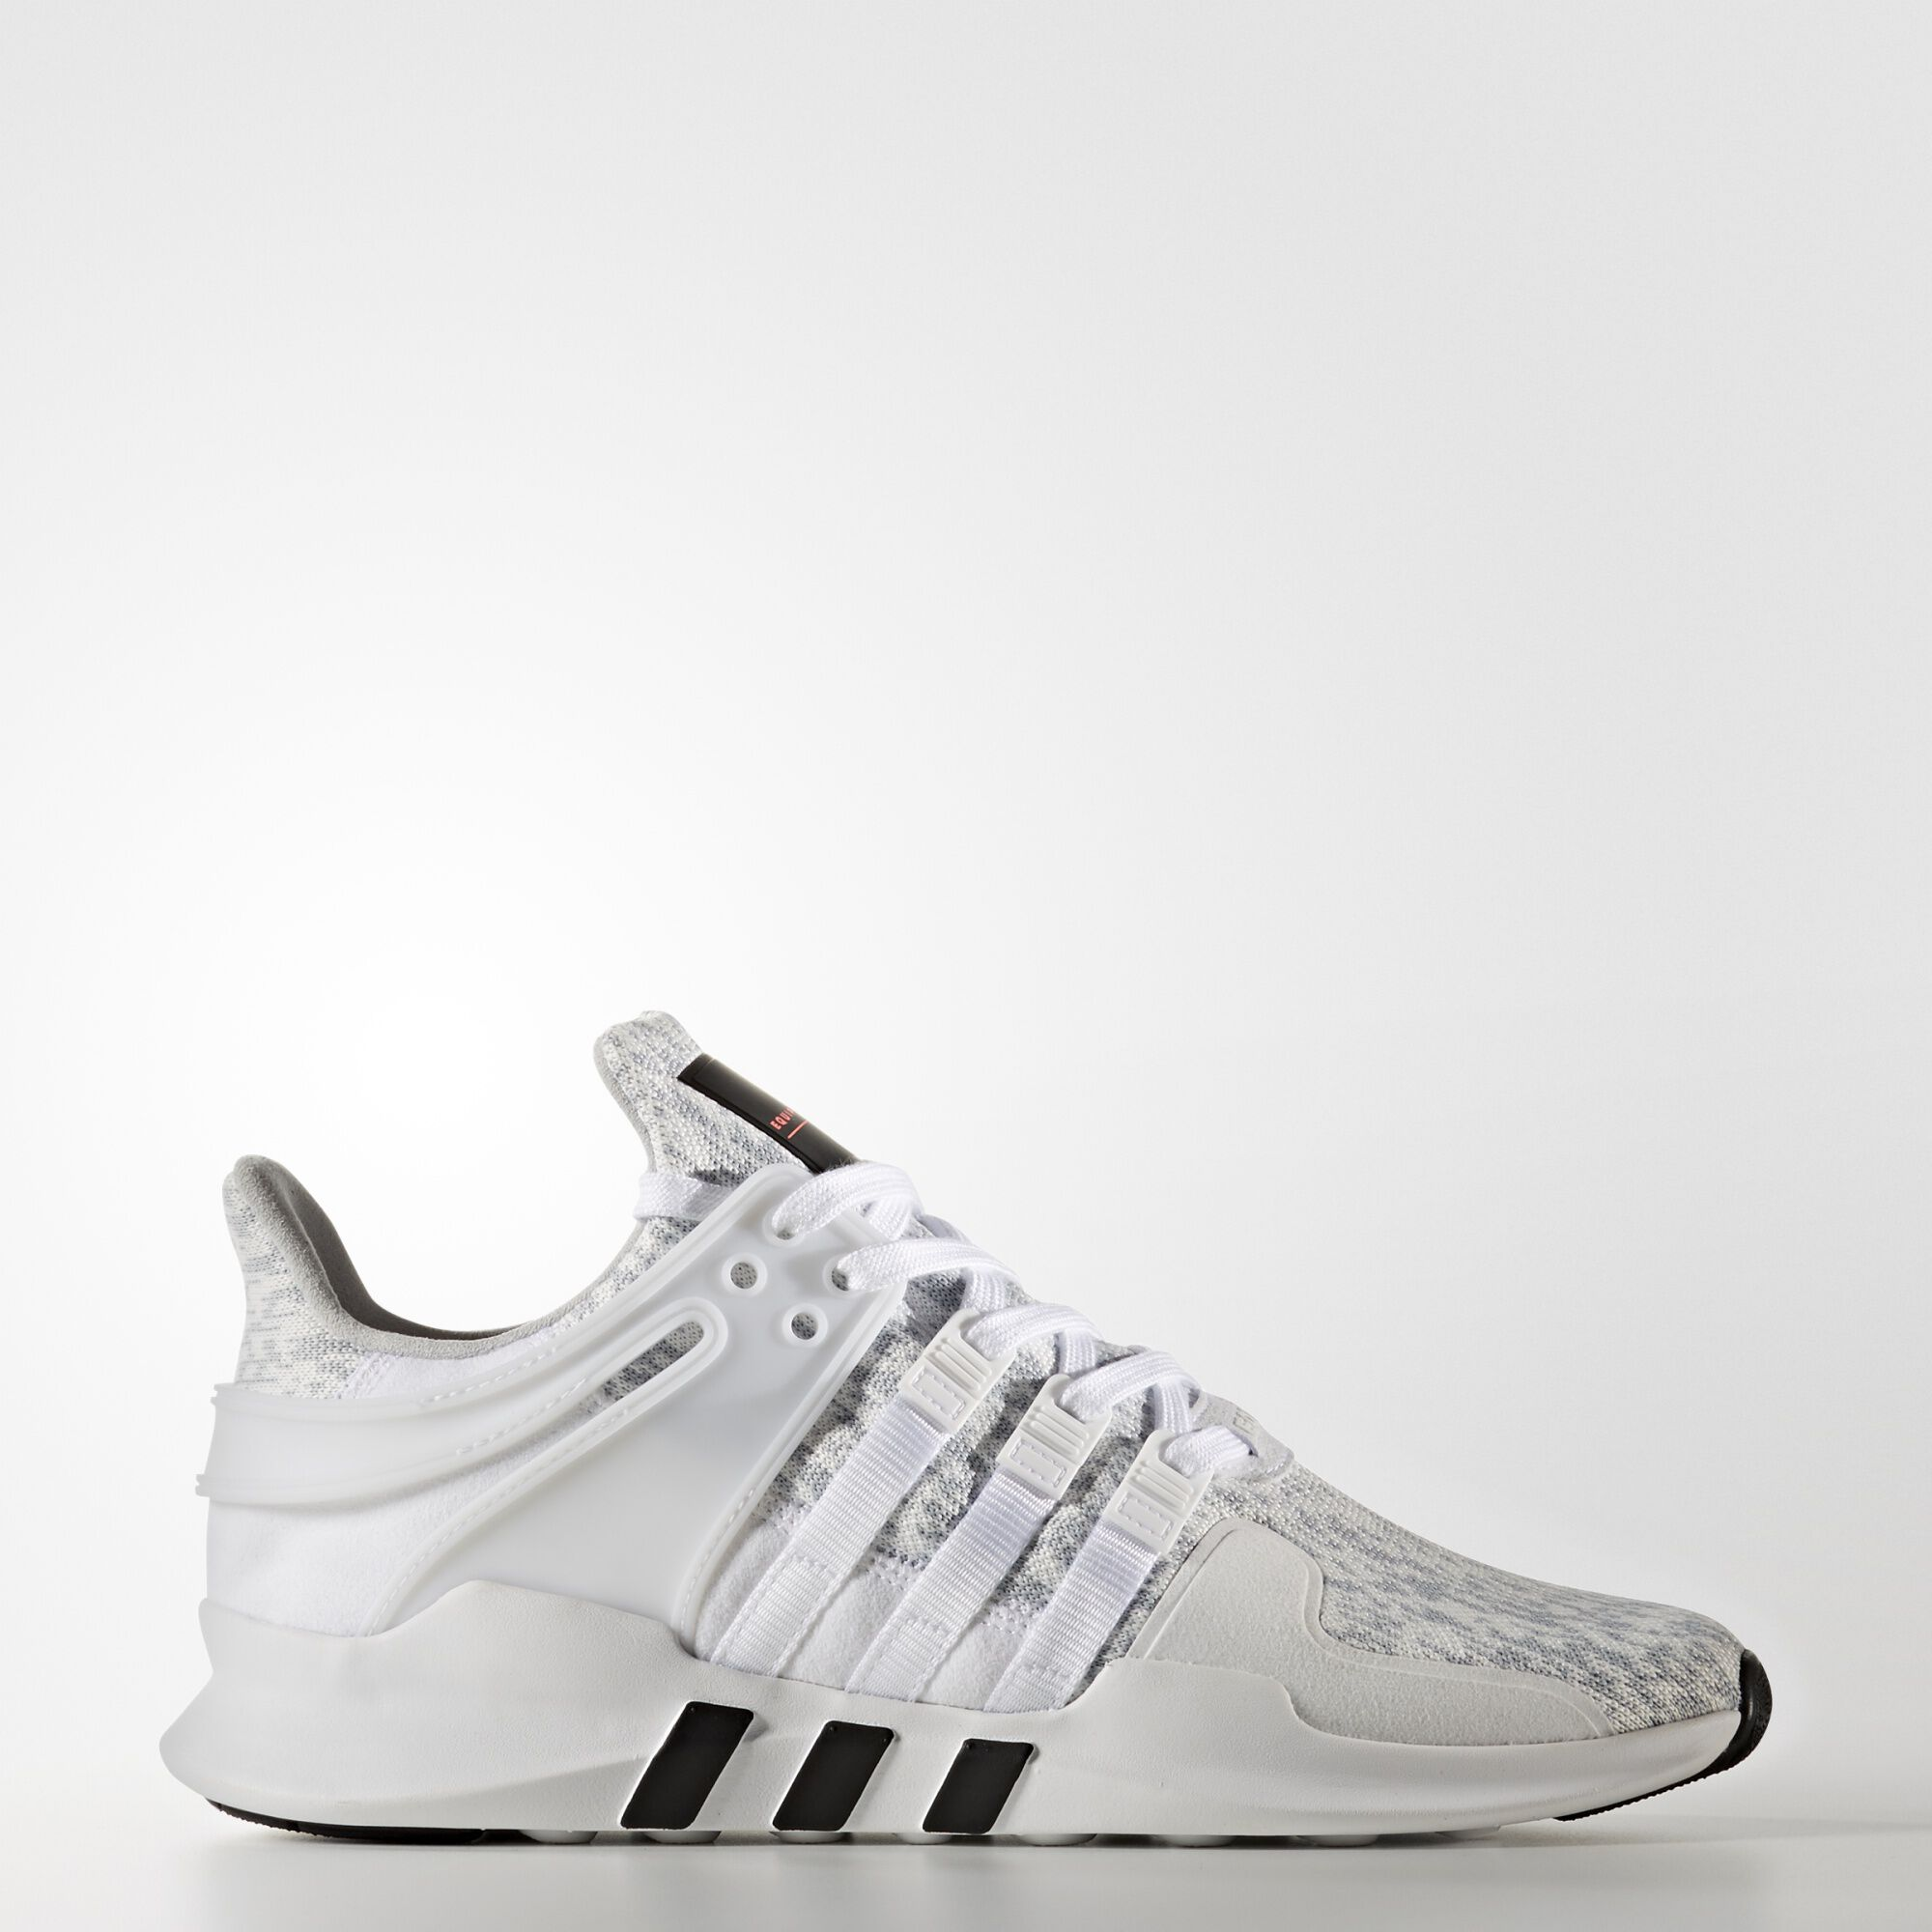 Adidas Eqt Eqt Boys' Foot Locker